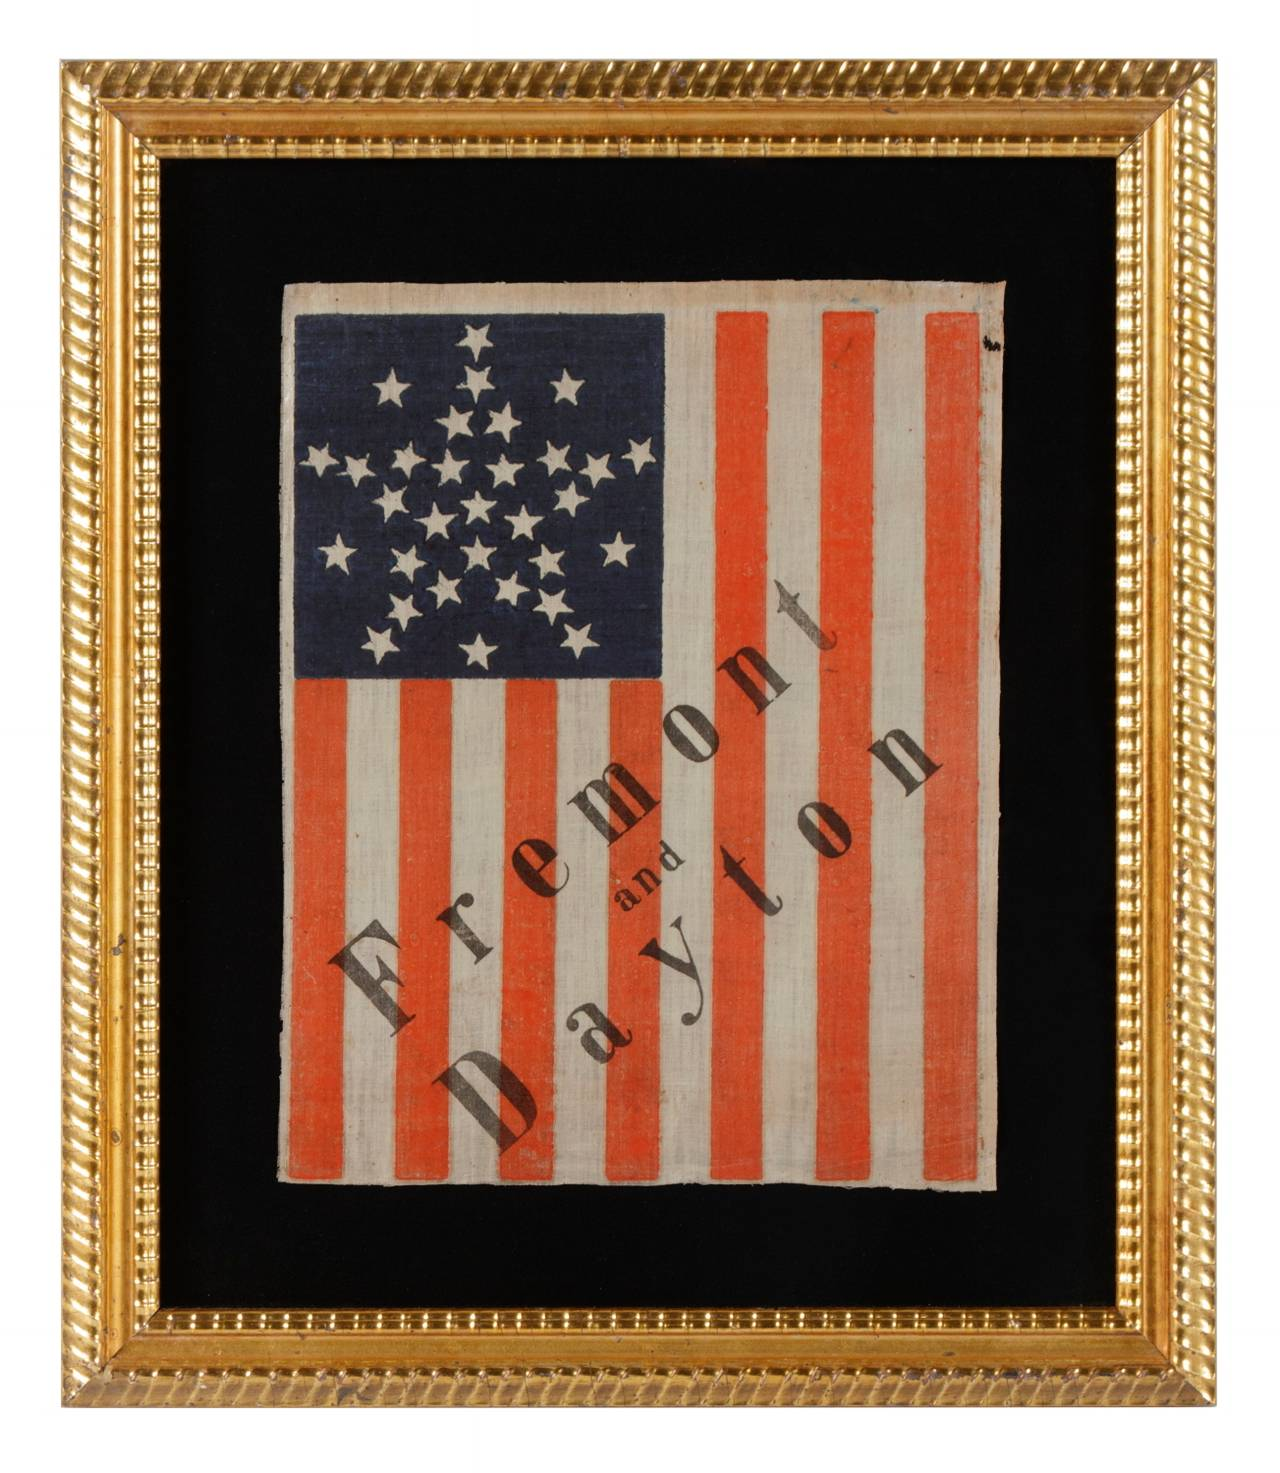 31 Star Antique American Flag 1856 Campaign Of John